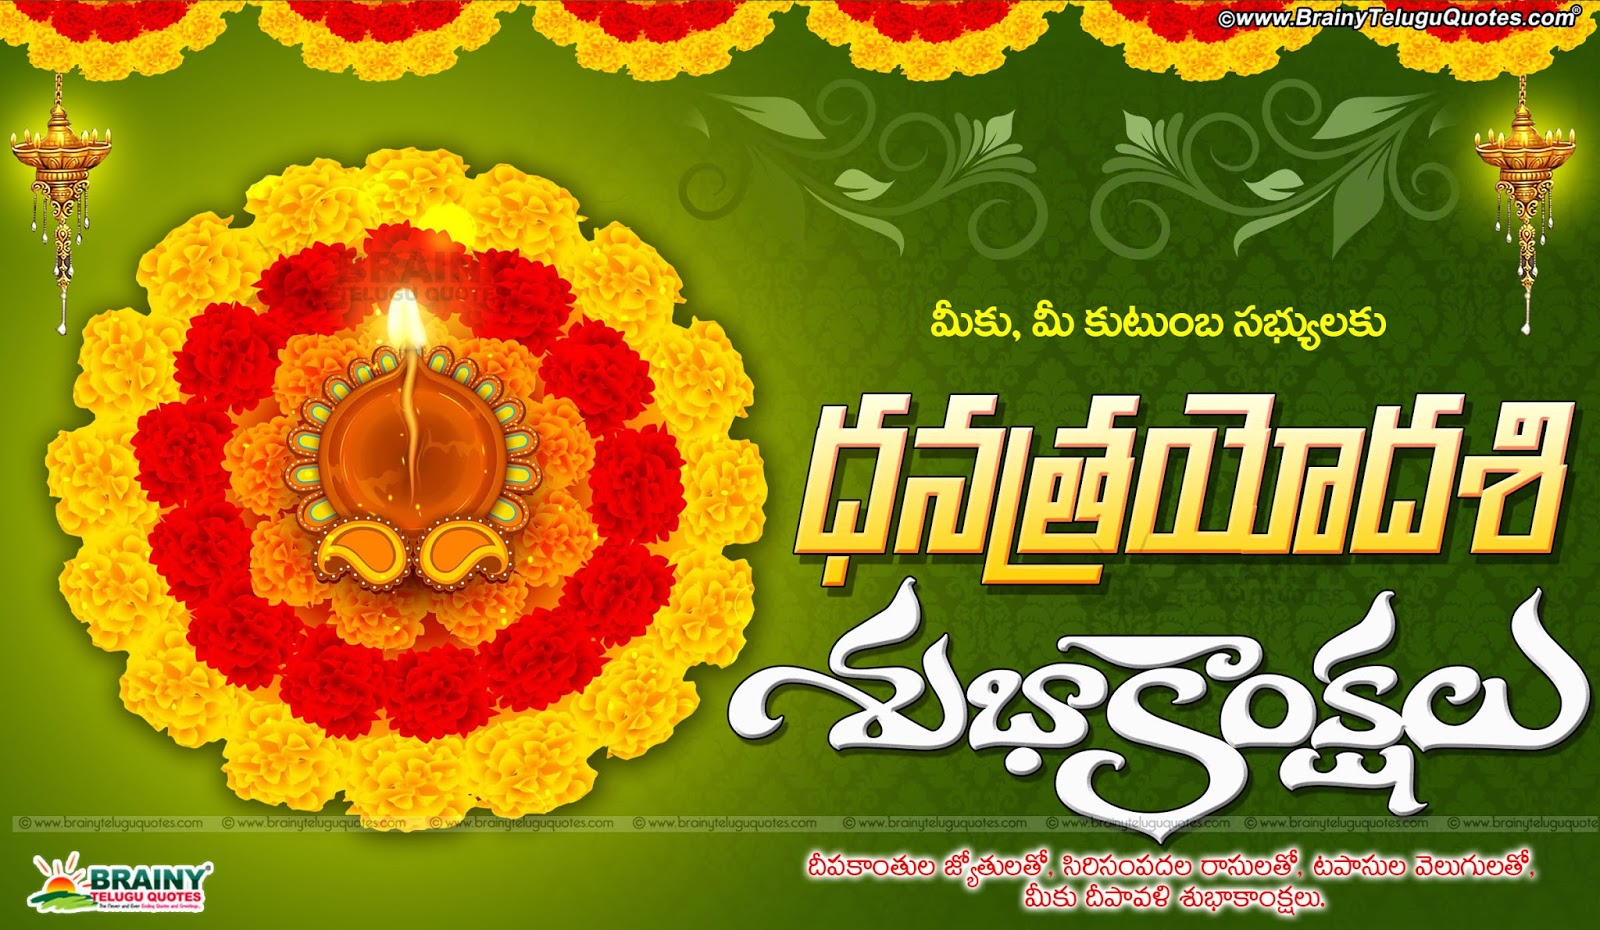 Here Is The Latest Dhana Trayodashi 2016 Greetings Wishes In